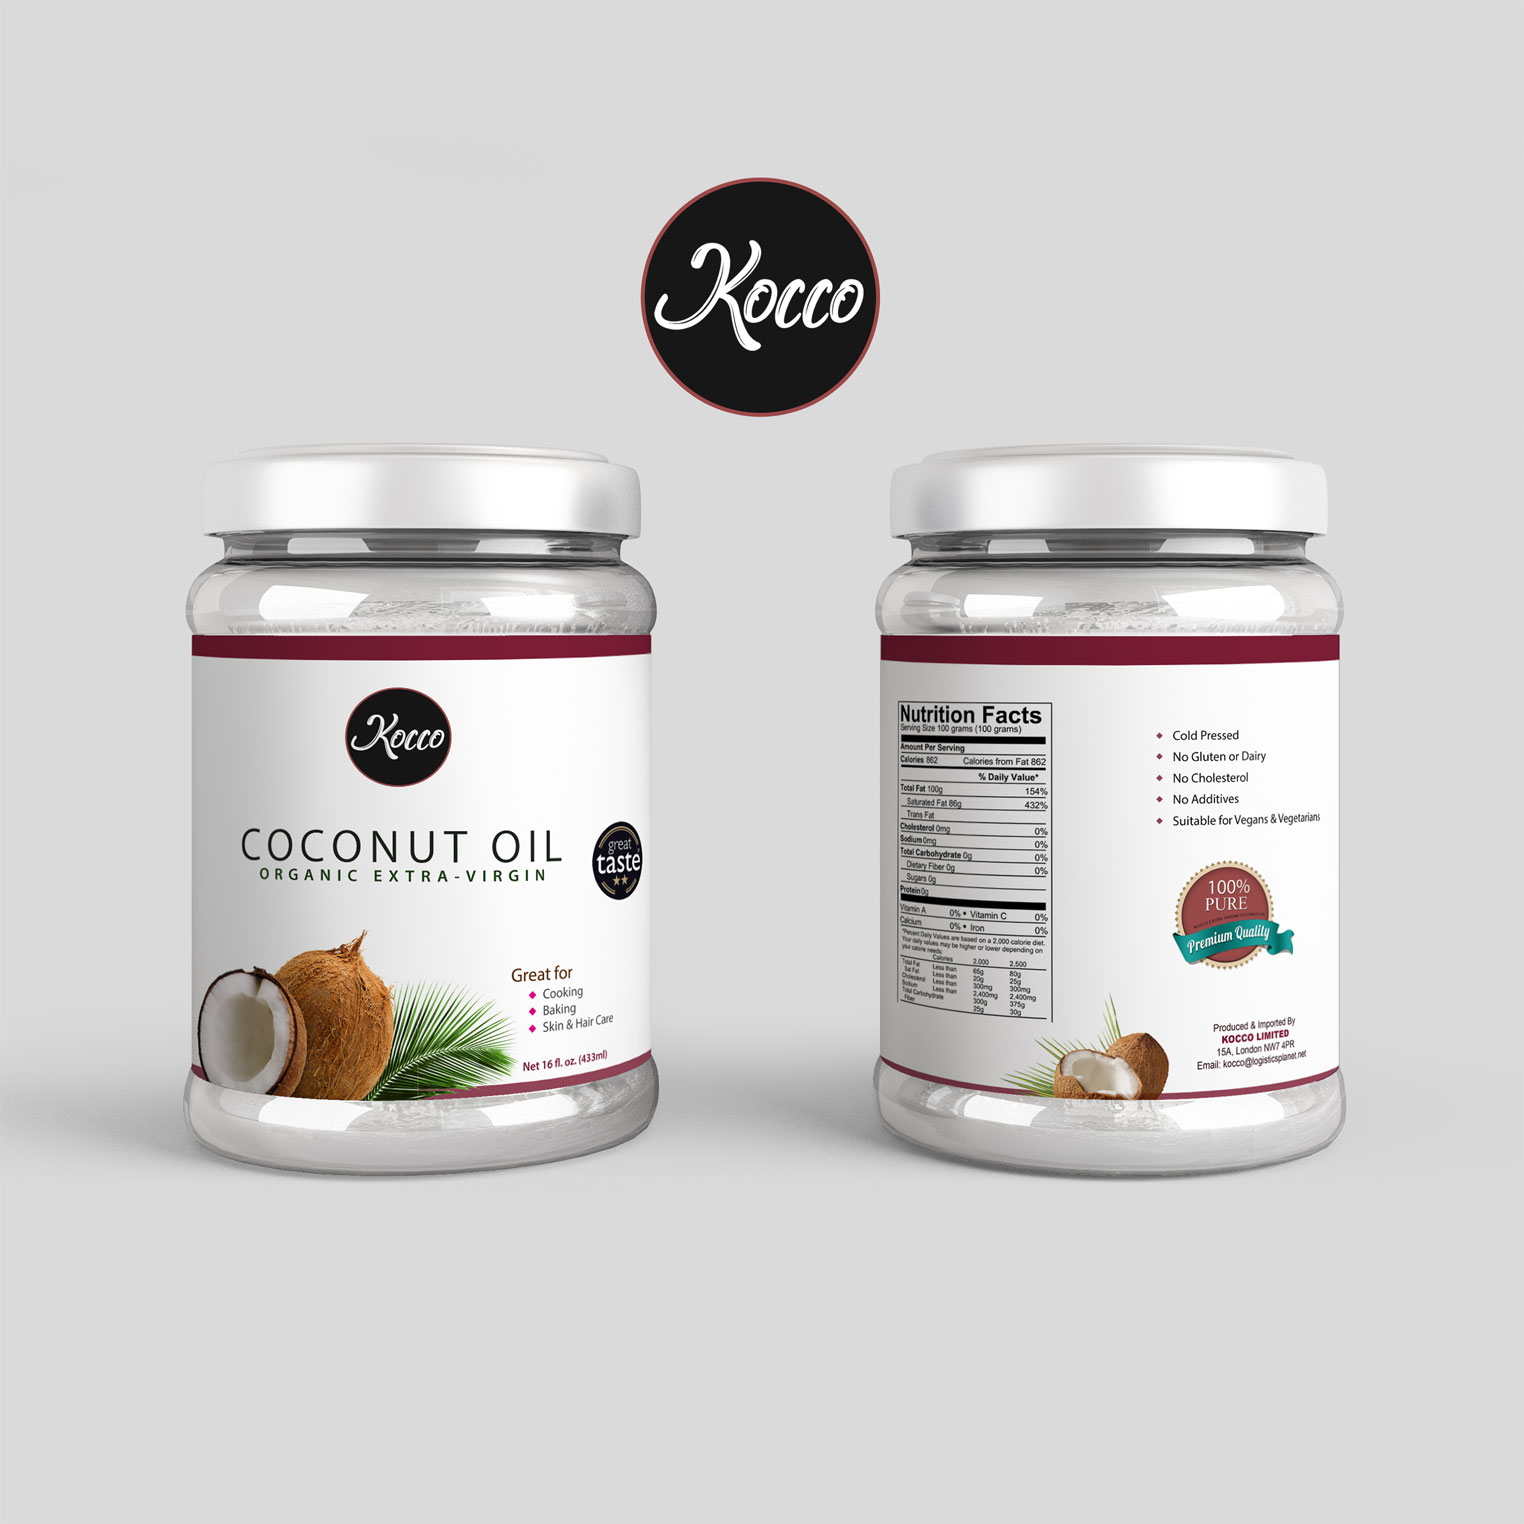 Branding and Product packaging design for kocco coconut oil